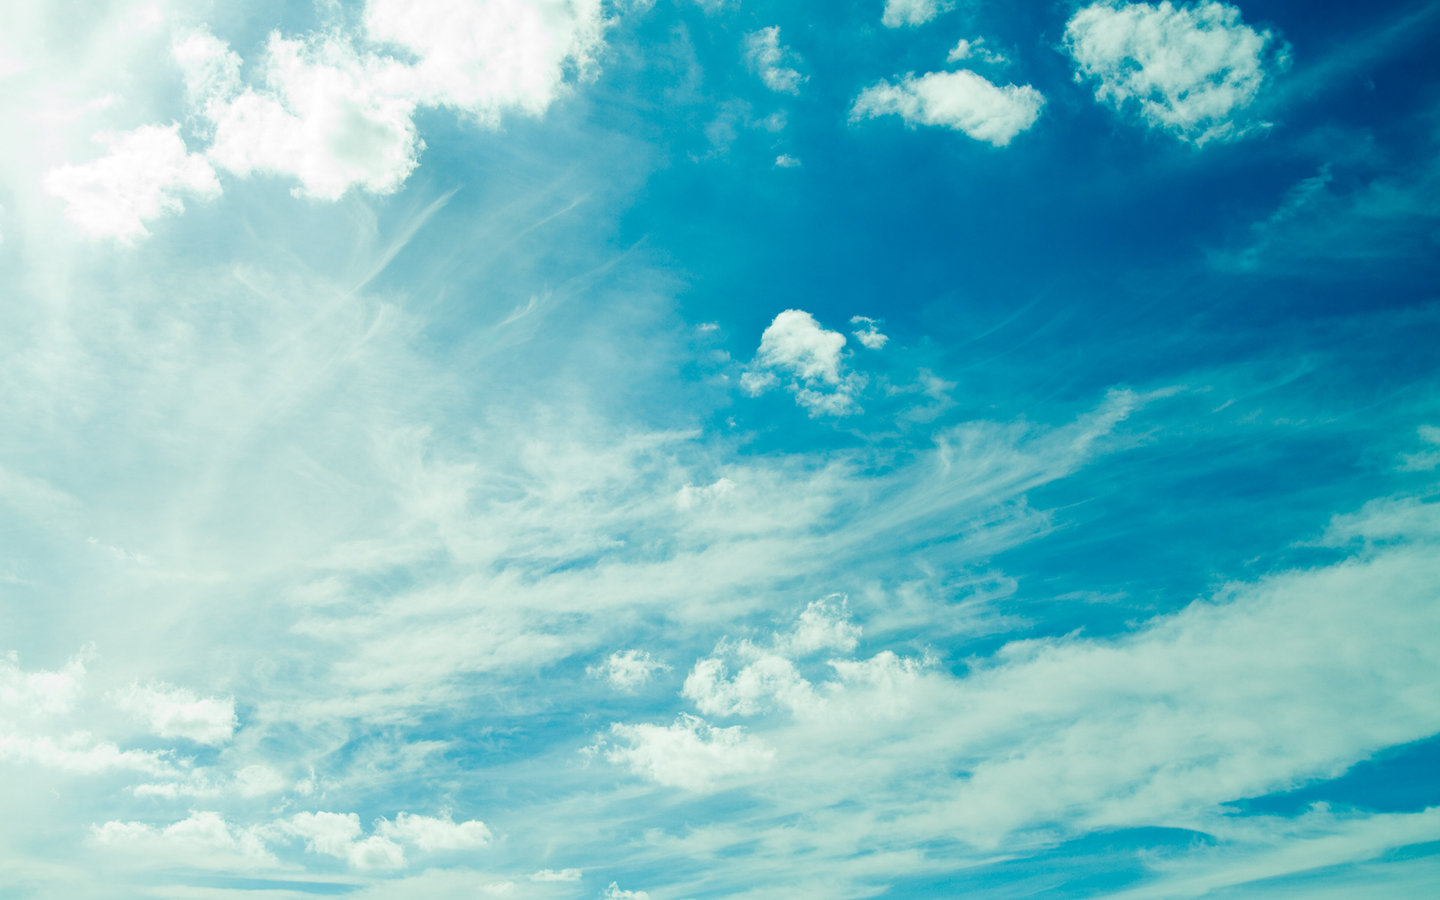 Sky Clouds Wallpapers Download Wallpapers in HD for your Desktop 1440x900